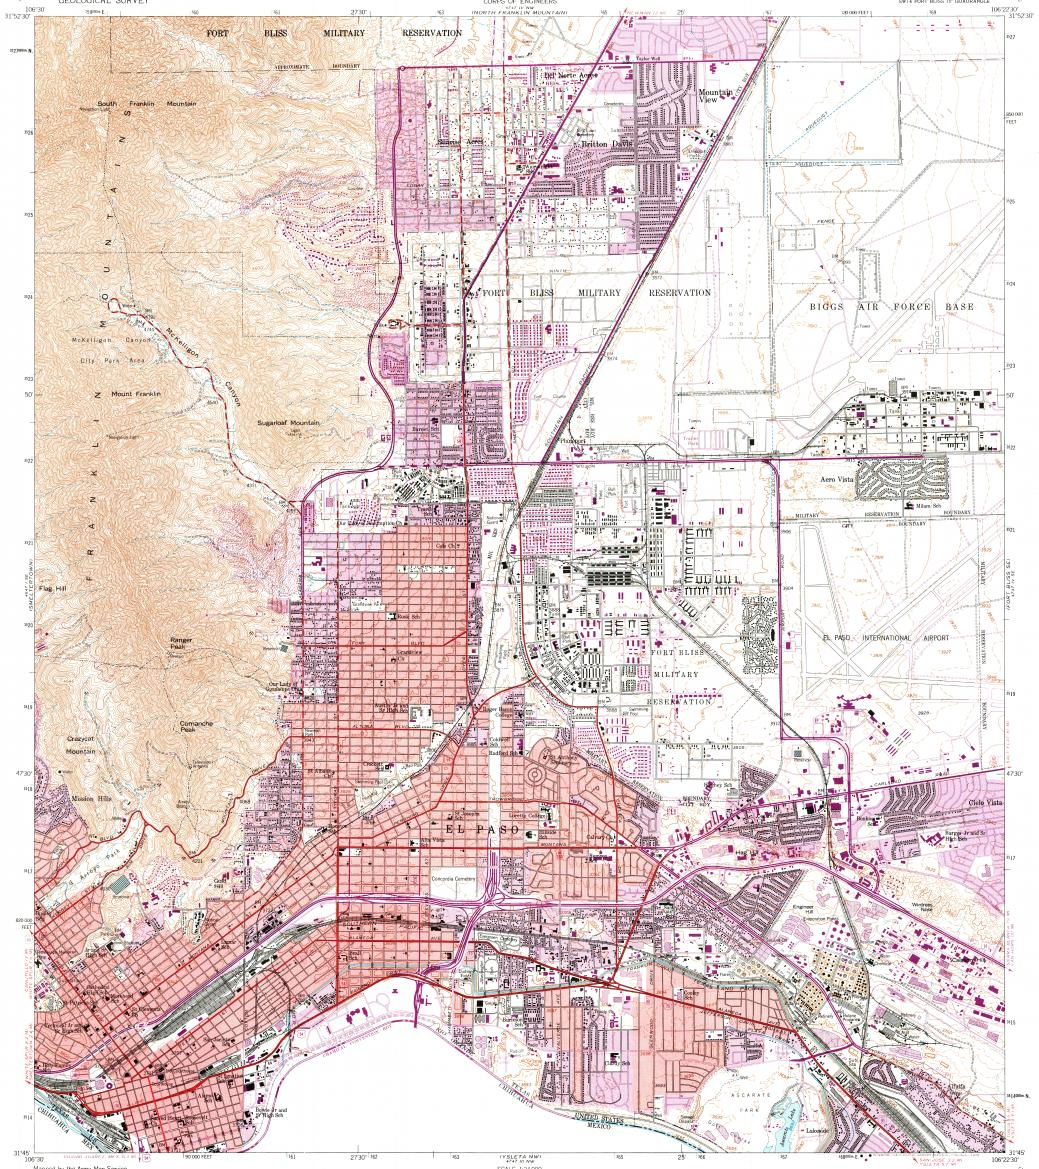 Download topographic map in area of El Paso, Fort Bliss - mapstor.com